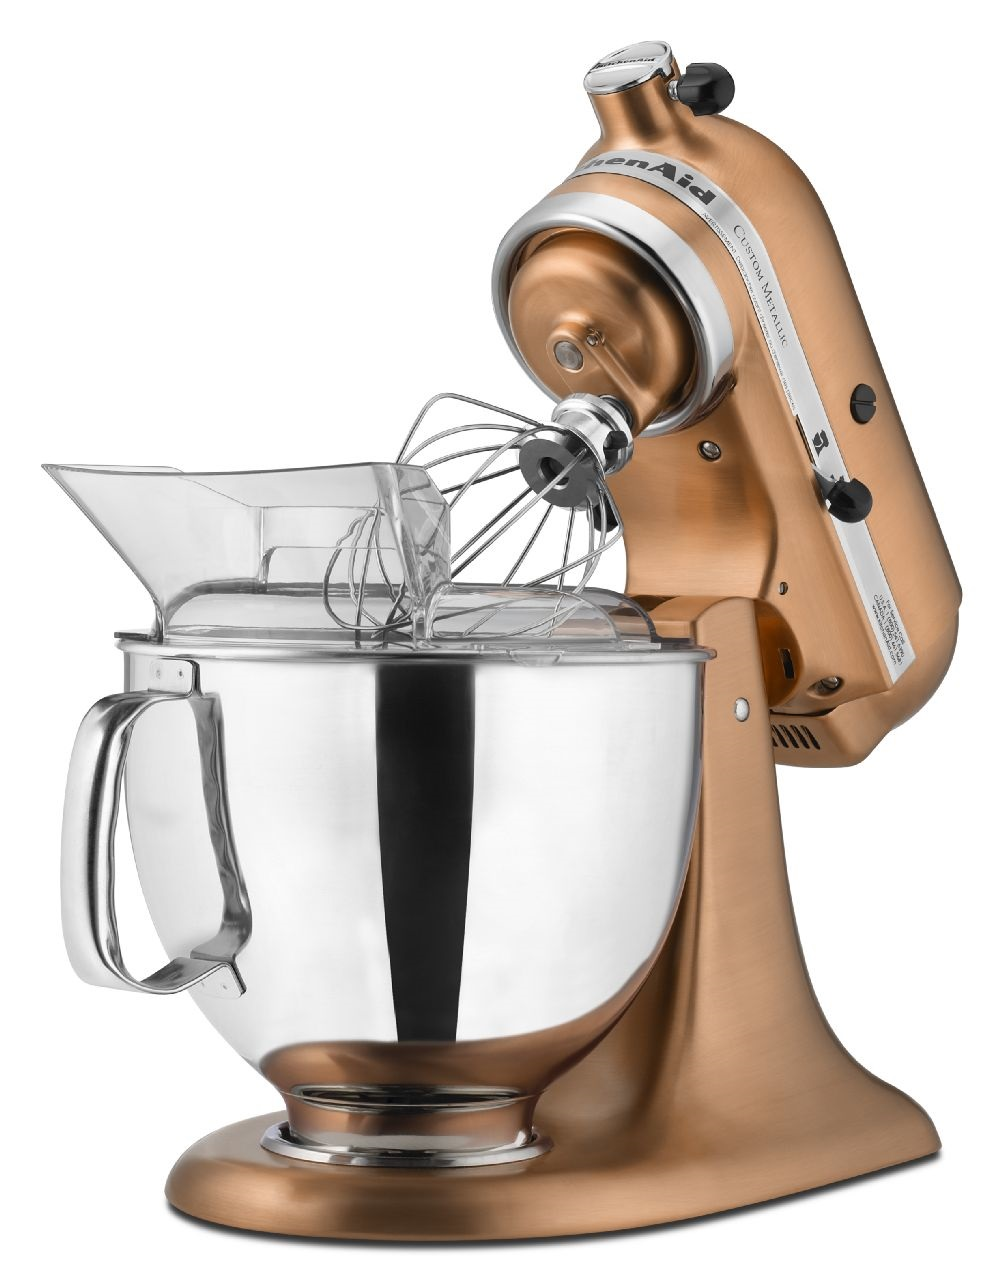 KitchenAid-Custom-Metallic-Series-5-Quart-Tilt-Head-Stand-Mixer-KSM152PS thumbnail 8